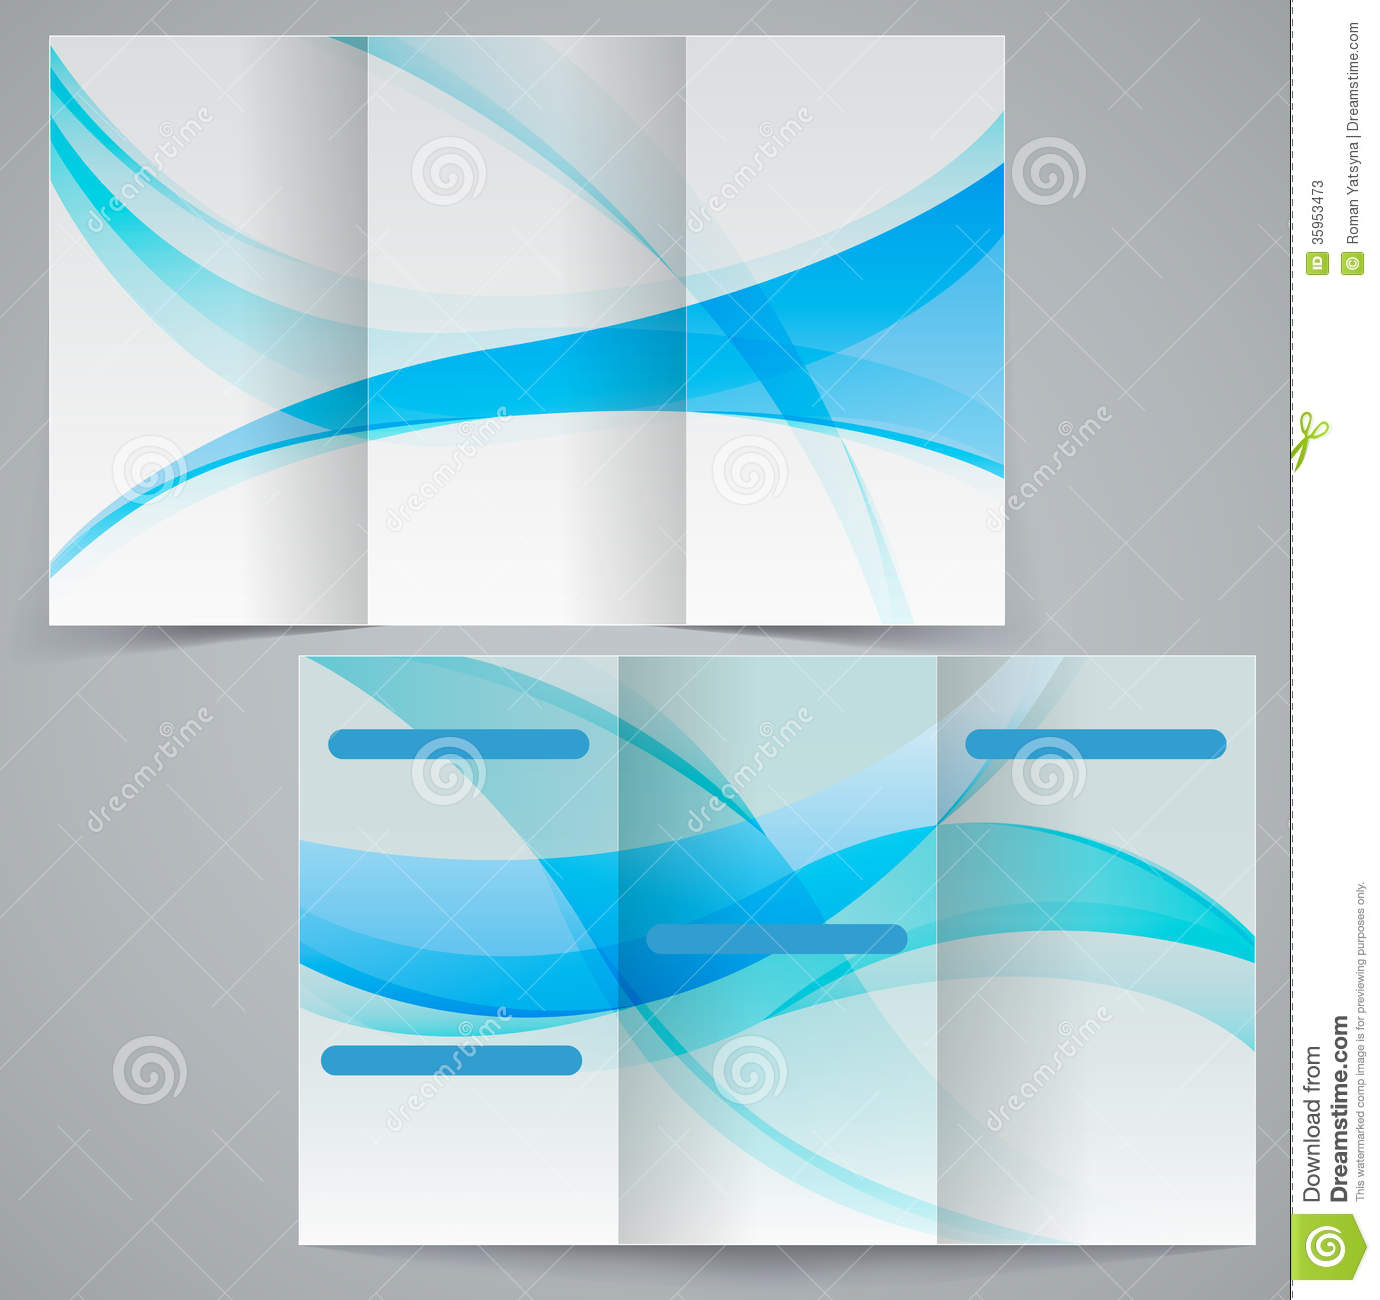 Tri Fold Business Brochure Template, Vector Blue D  Microsoft Tri Fold Brochure Template Free